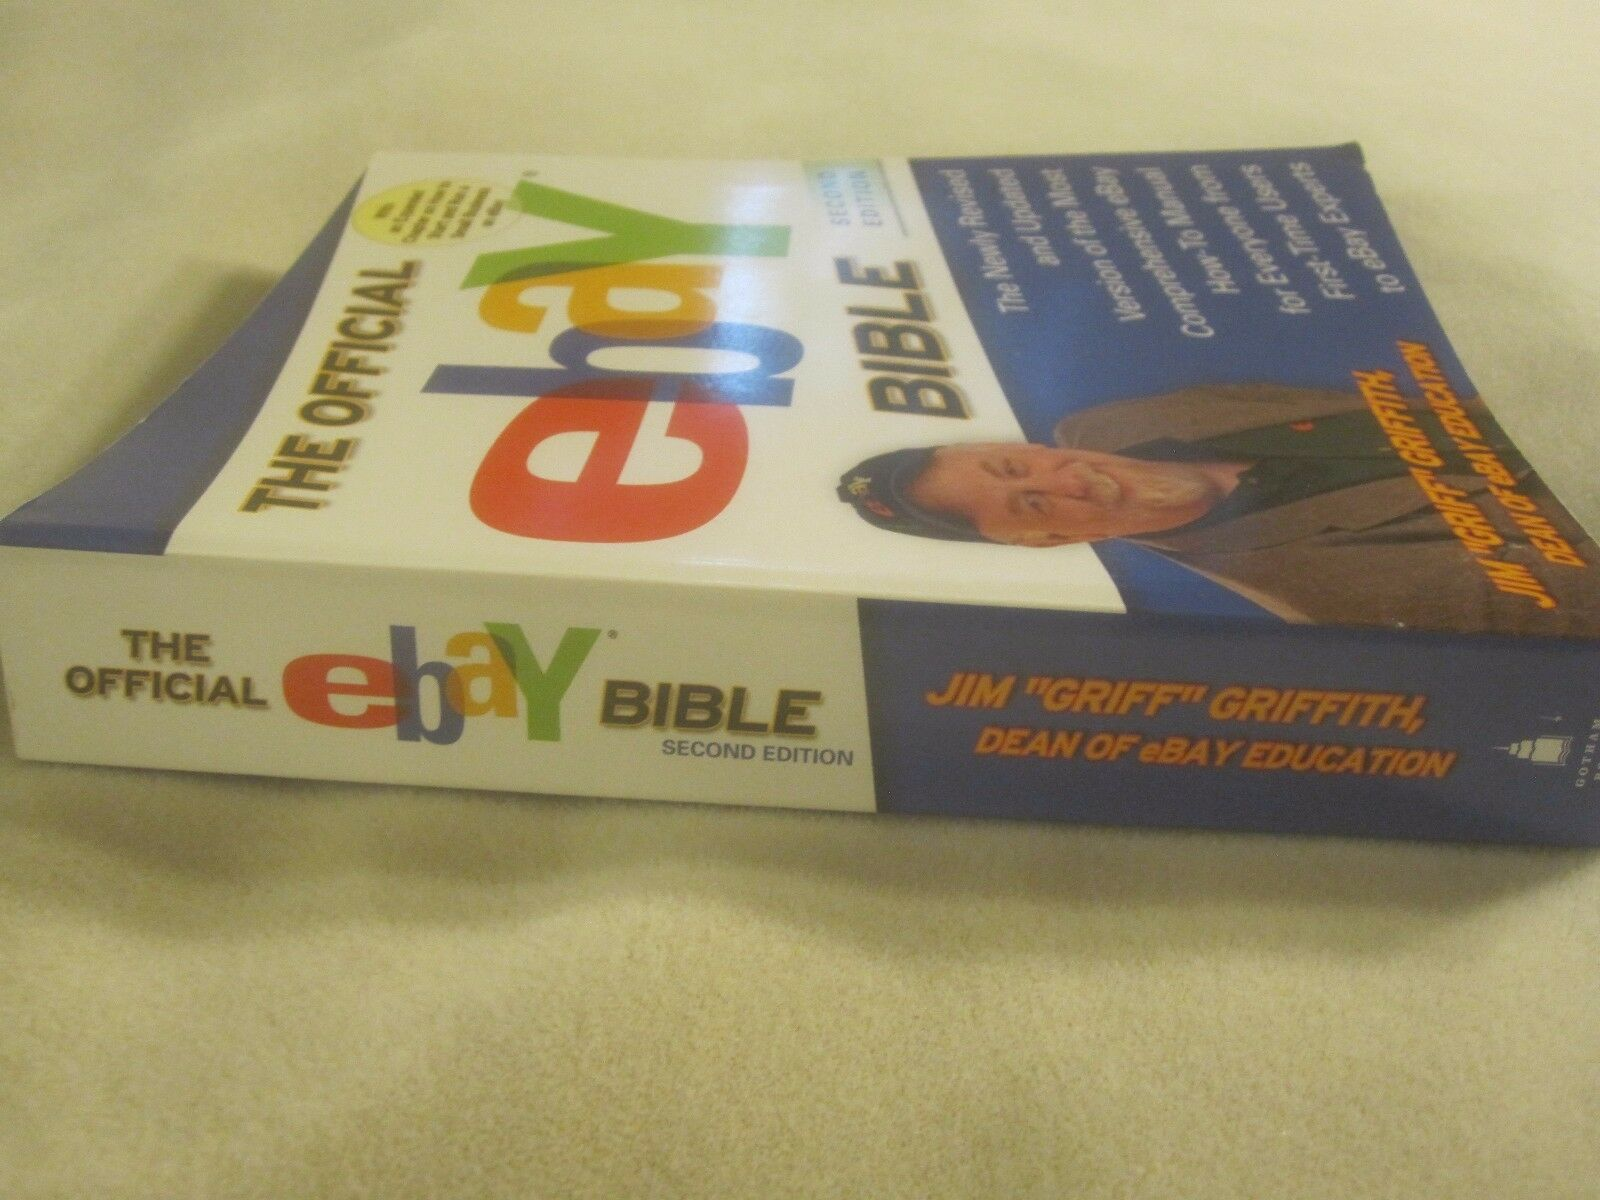 The Official Ebay Bible by Jim Griff Griffith (2005, Paperback, Revised) |  eBay